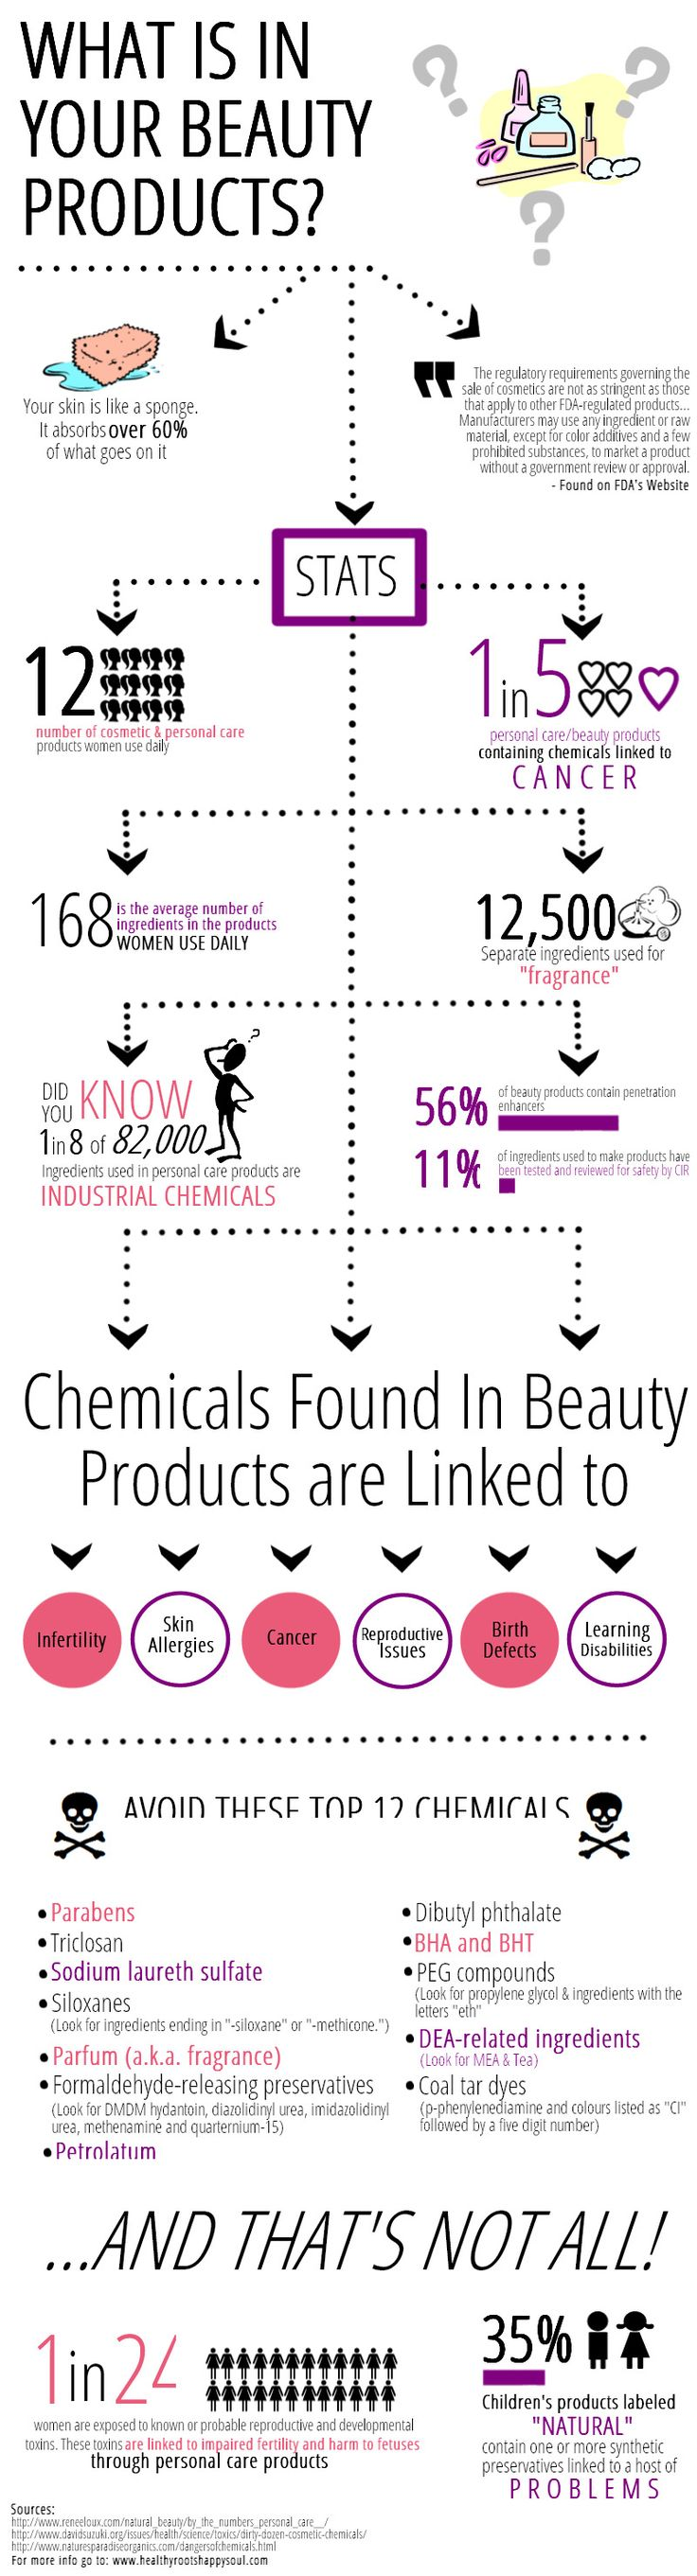 What is in your beauty chemicals? Find out how to revamp your personal/beauty care products here --> http://www.healthyrootshappysoul.com/world-rockin-stats-about-chemicals-in-beauty-products/